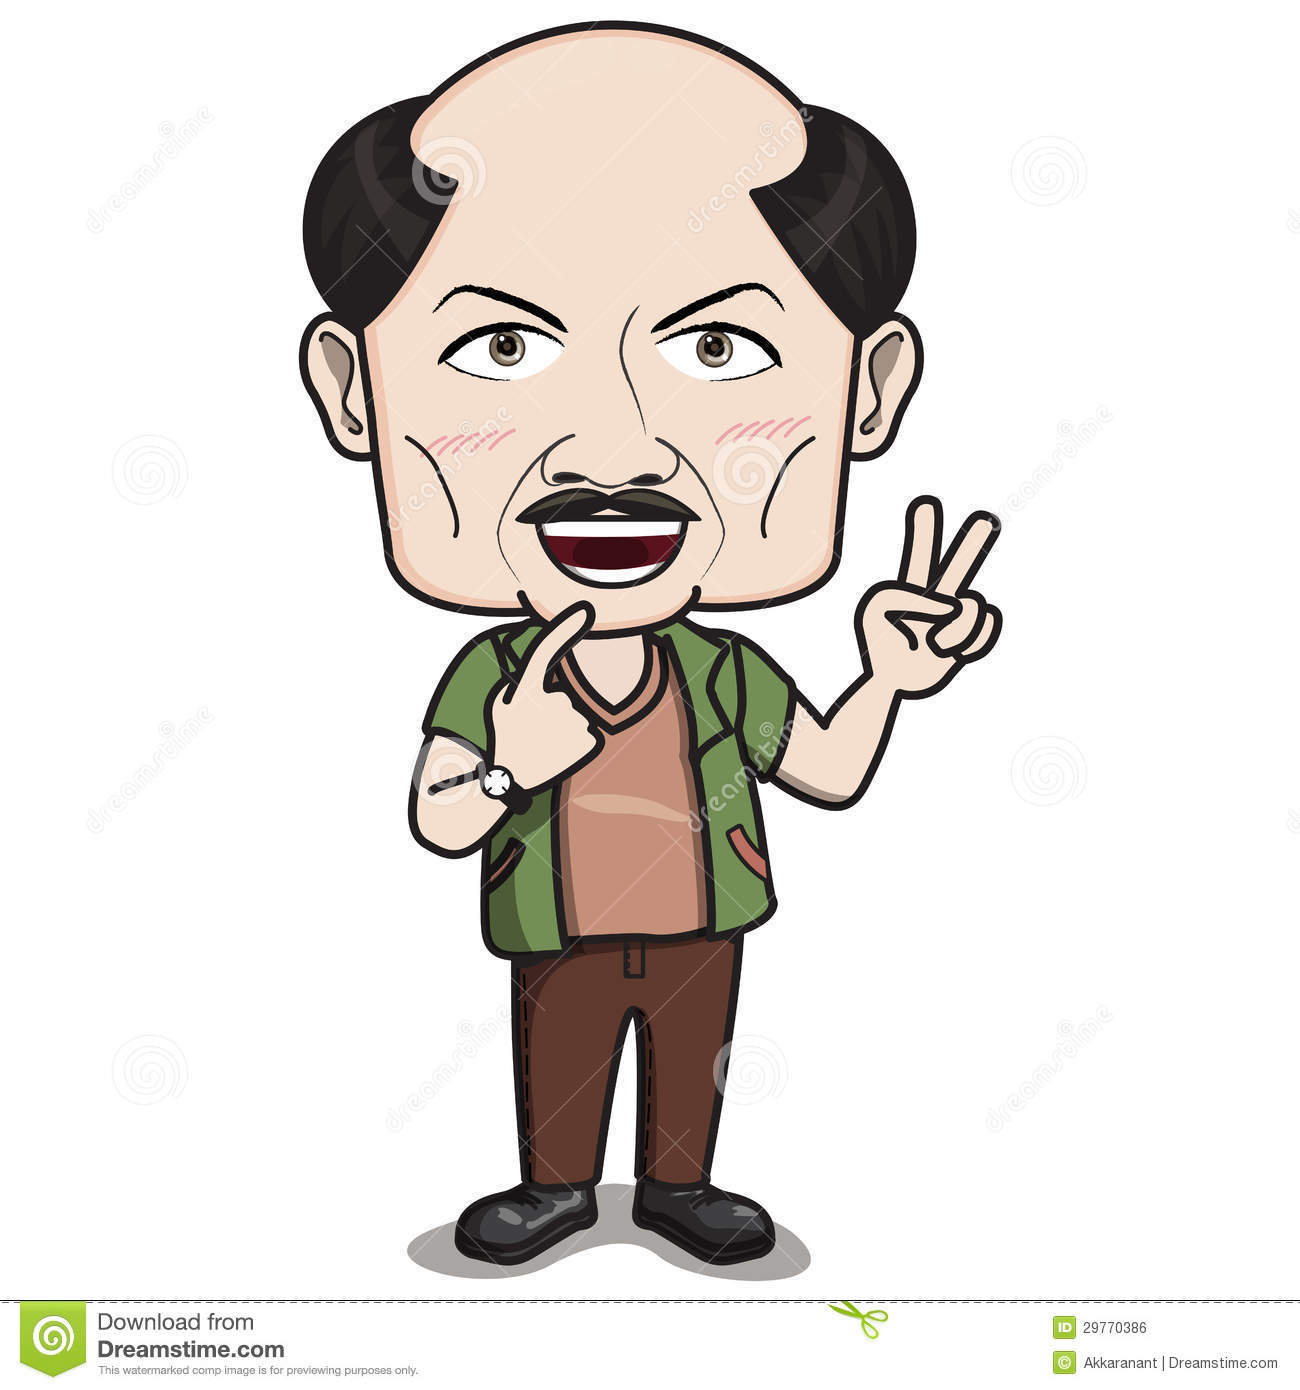 2 Male Cartoon Characters : ฺbald headed man character smiling with finger hand